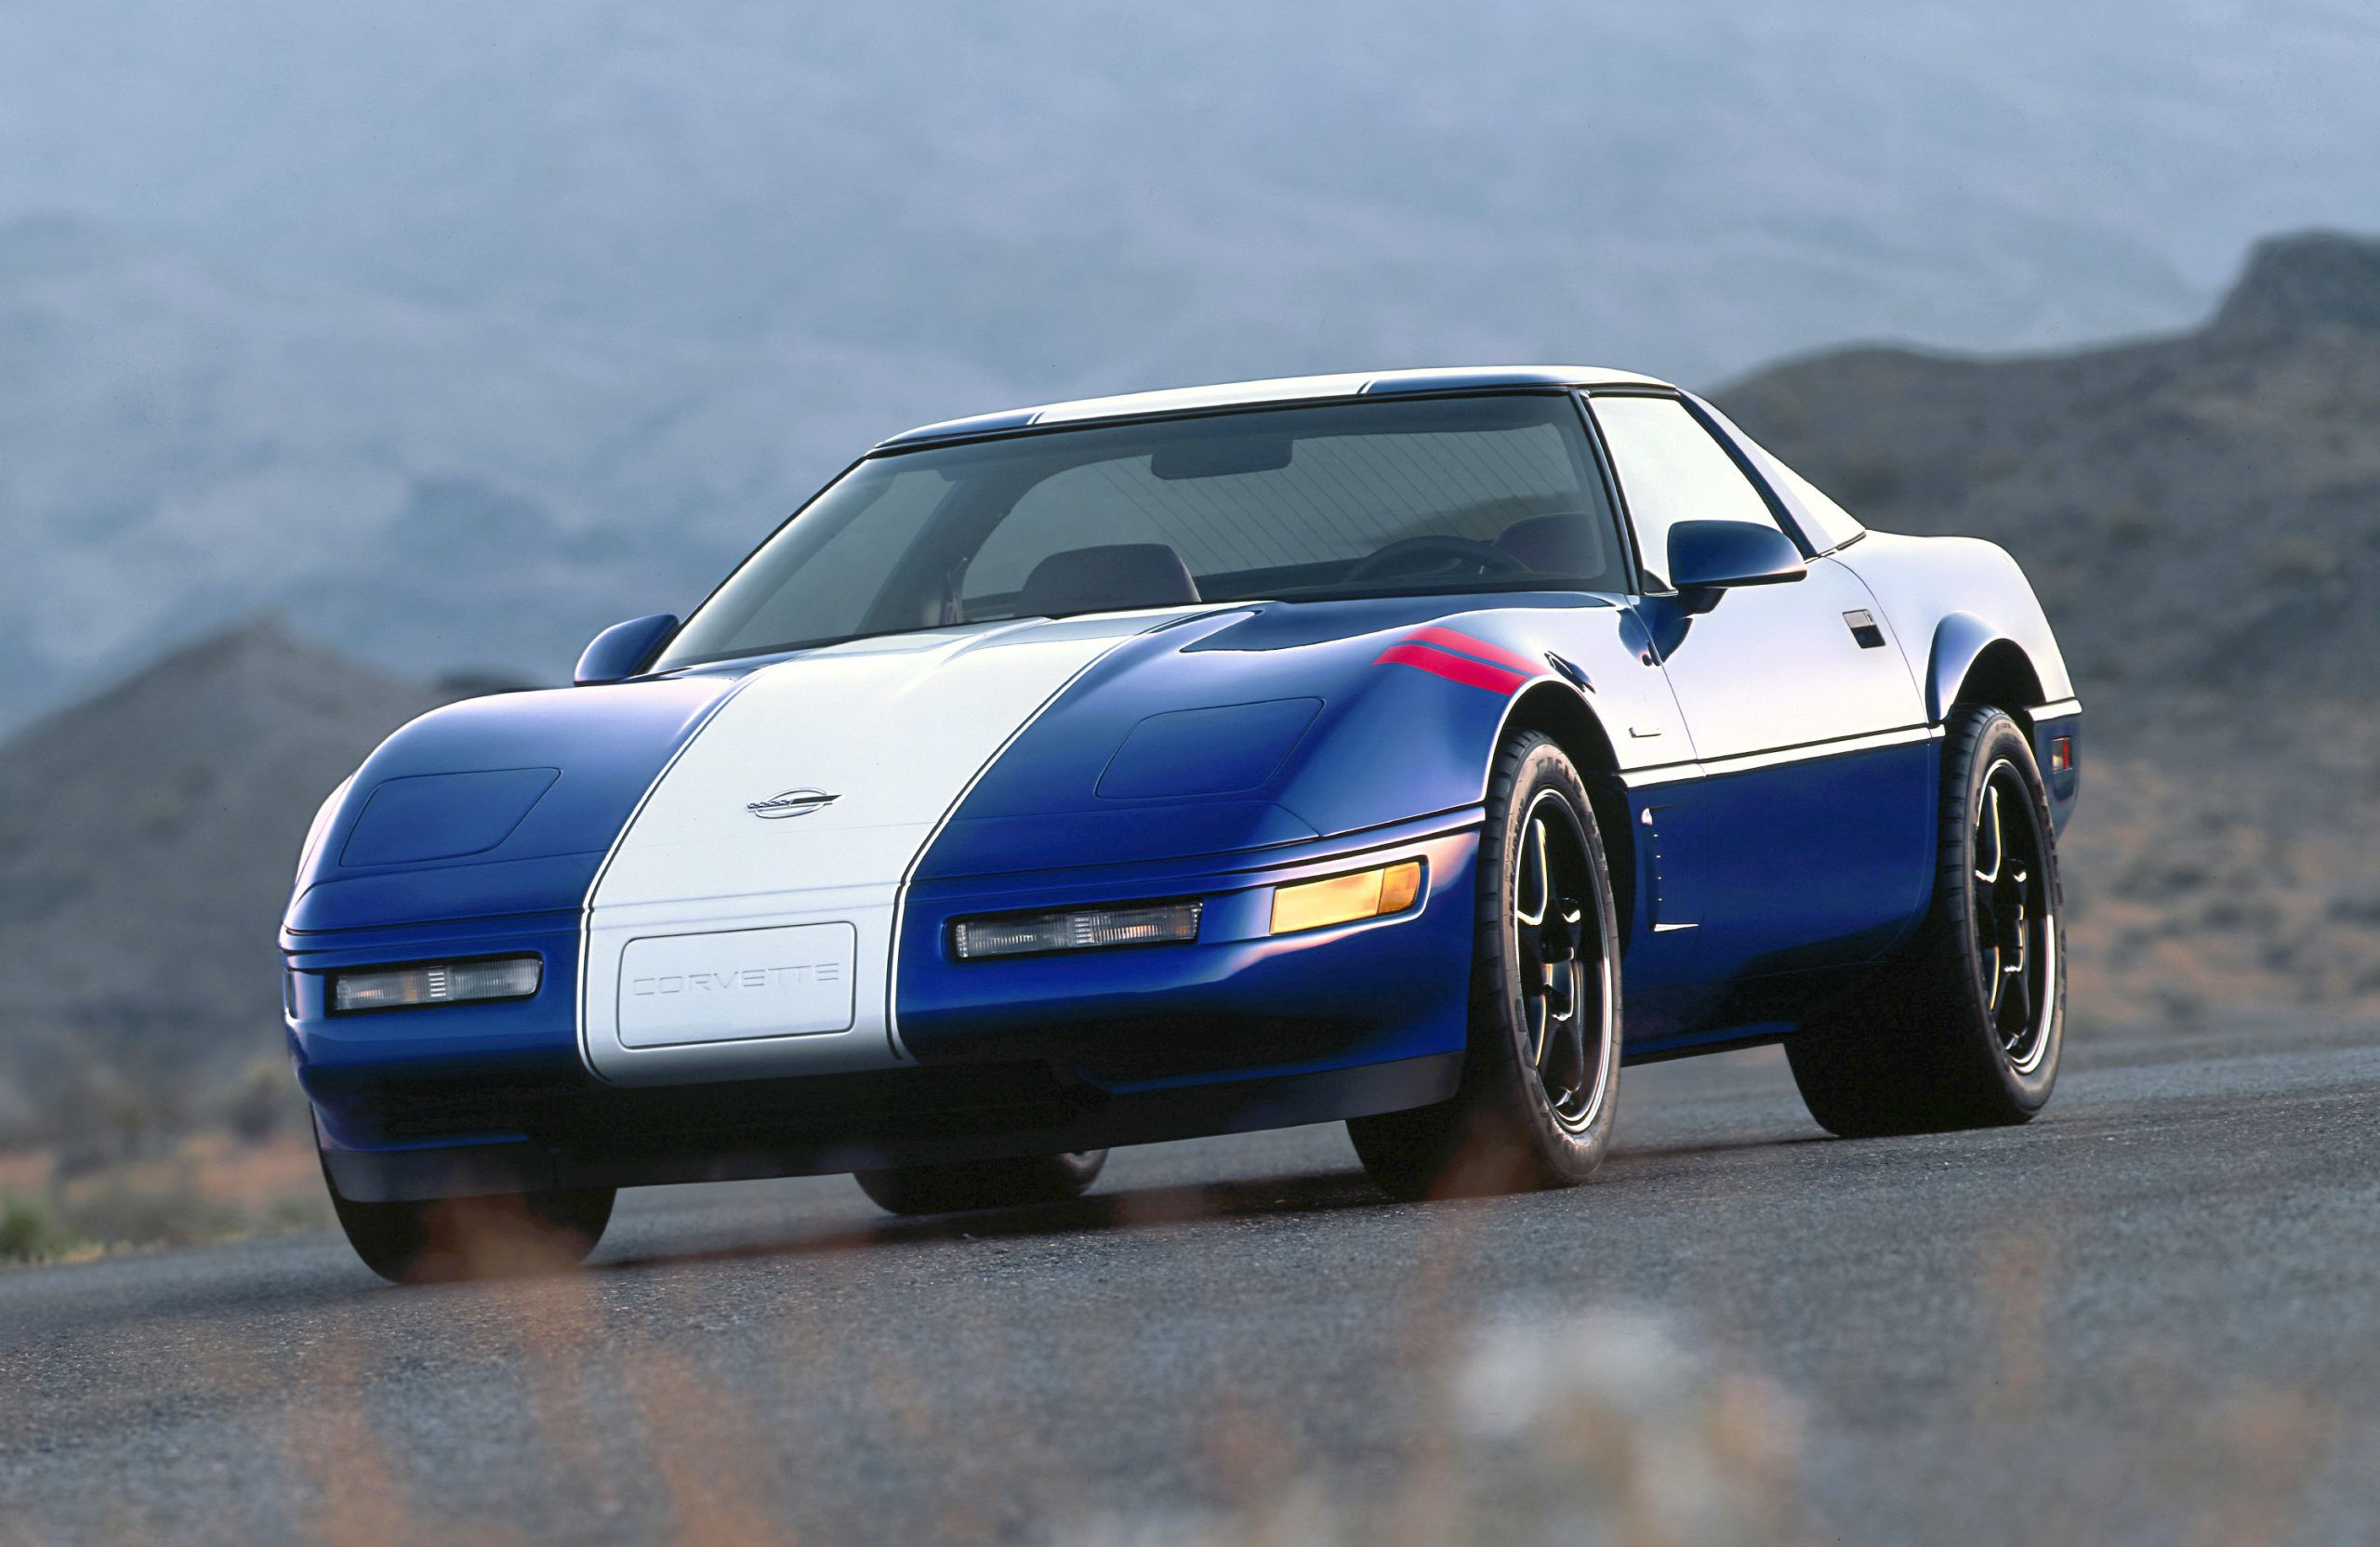 A blue and white-striped Chevy Corvette C4 Grand Sport shot from the front 3/4 angle